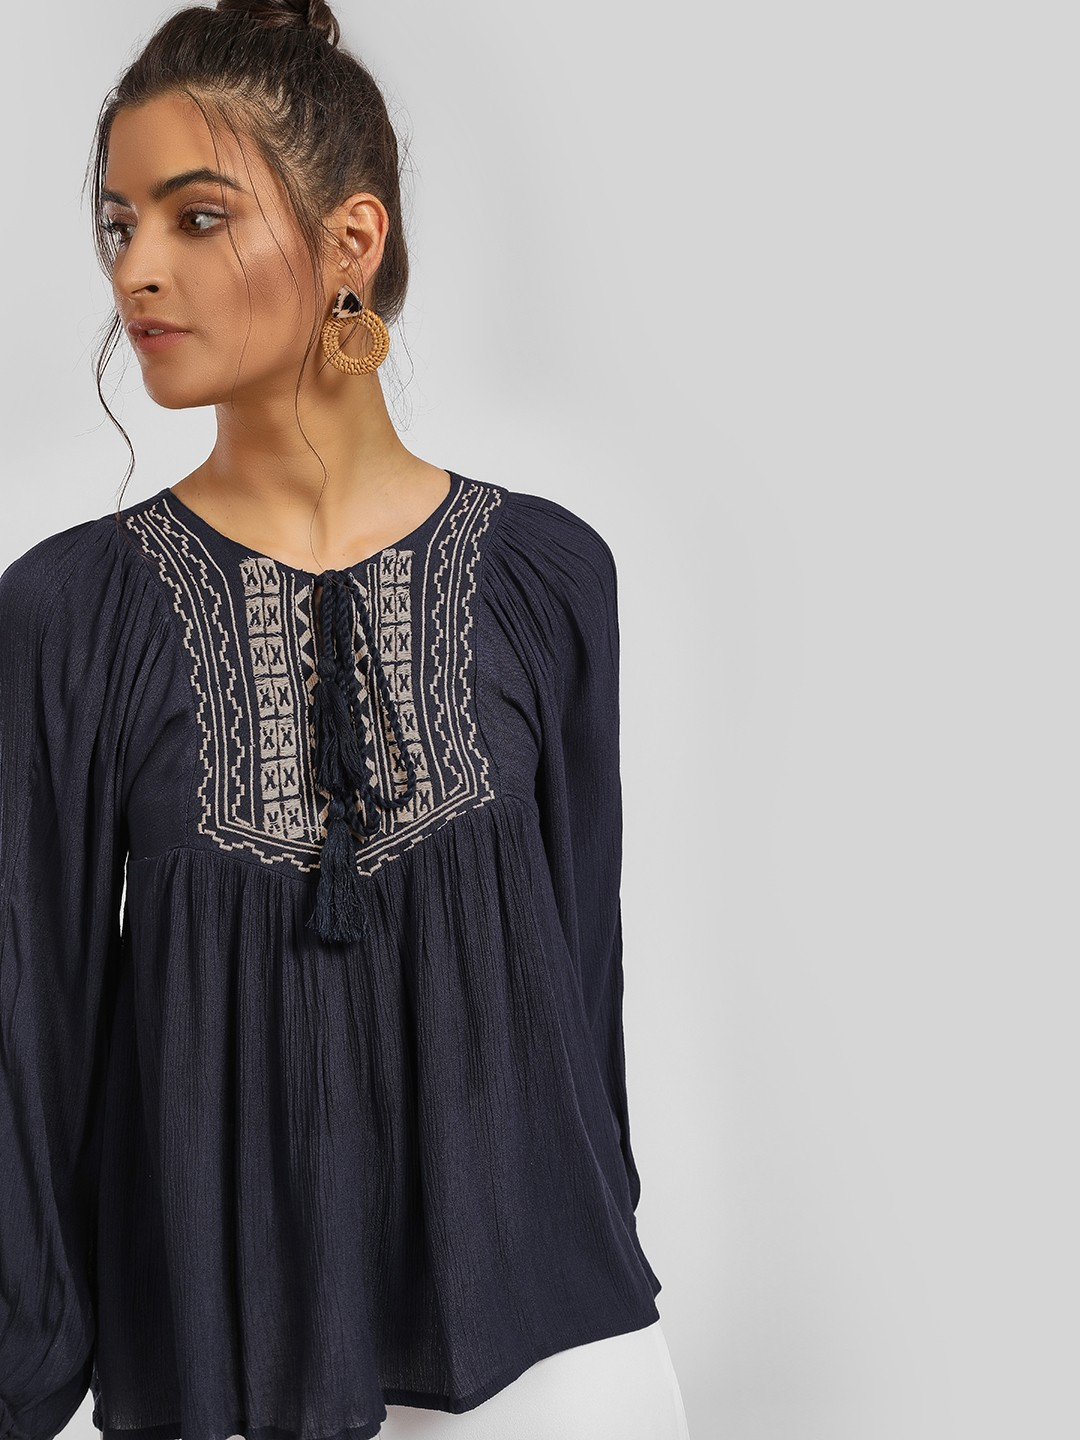 MIWAY Navy Tribal Embroidered Tassel Tie-Up Blouse 1